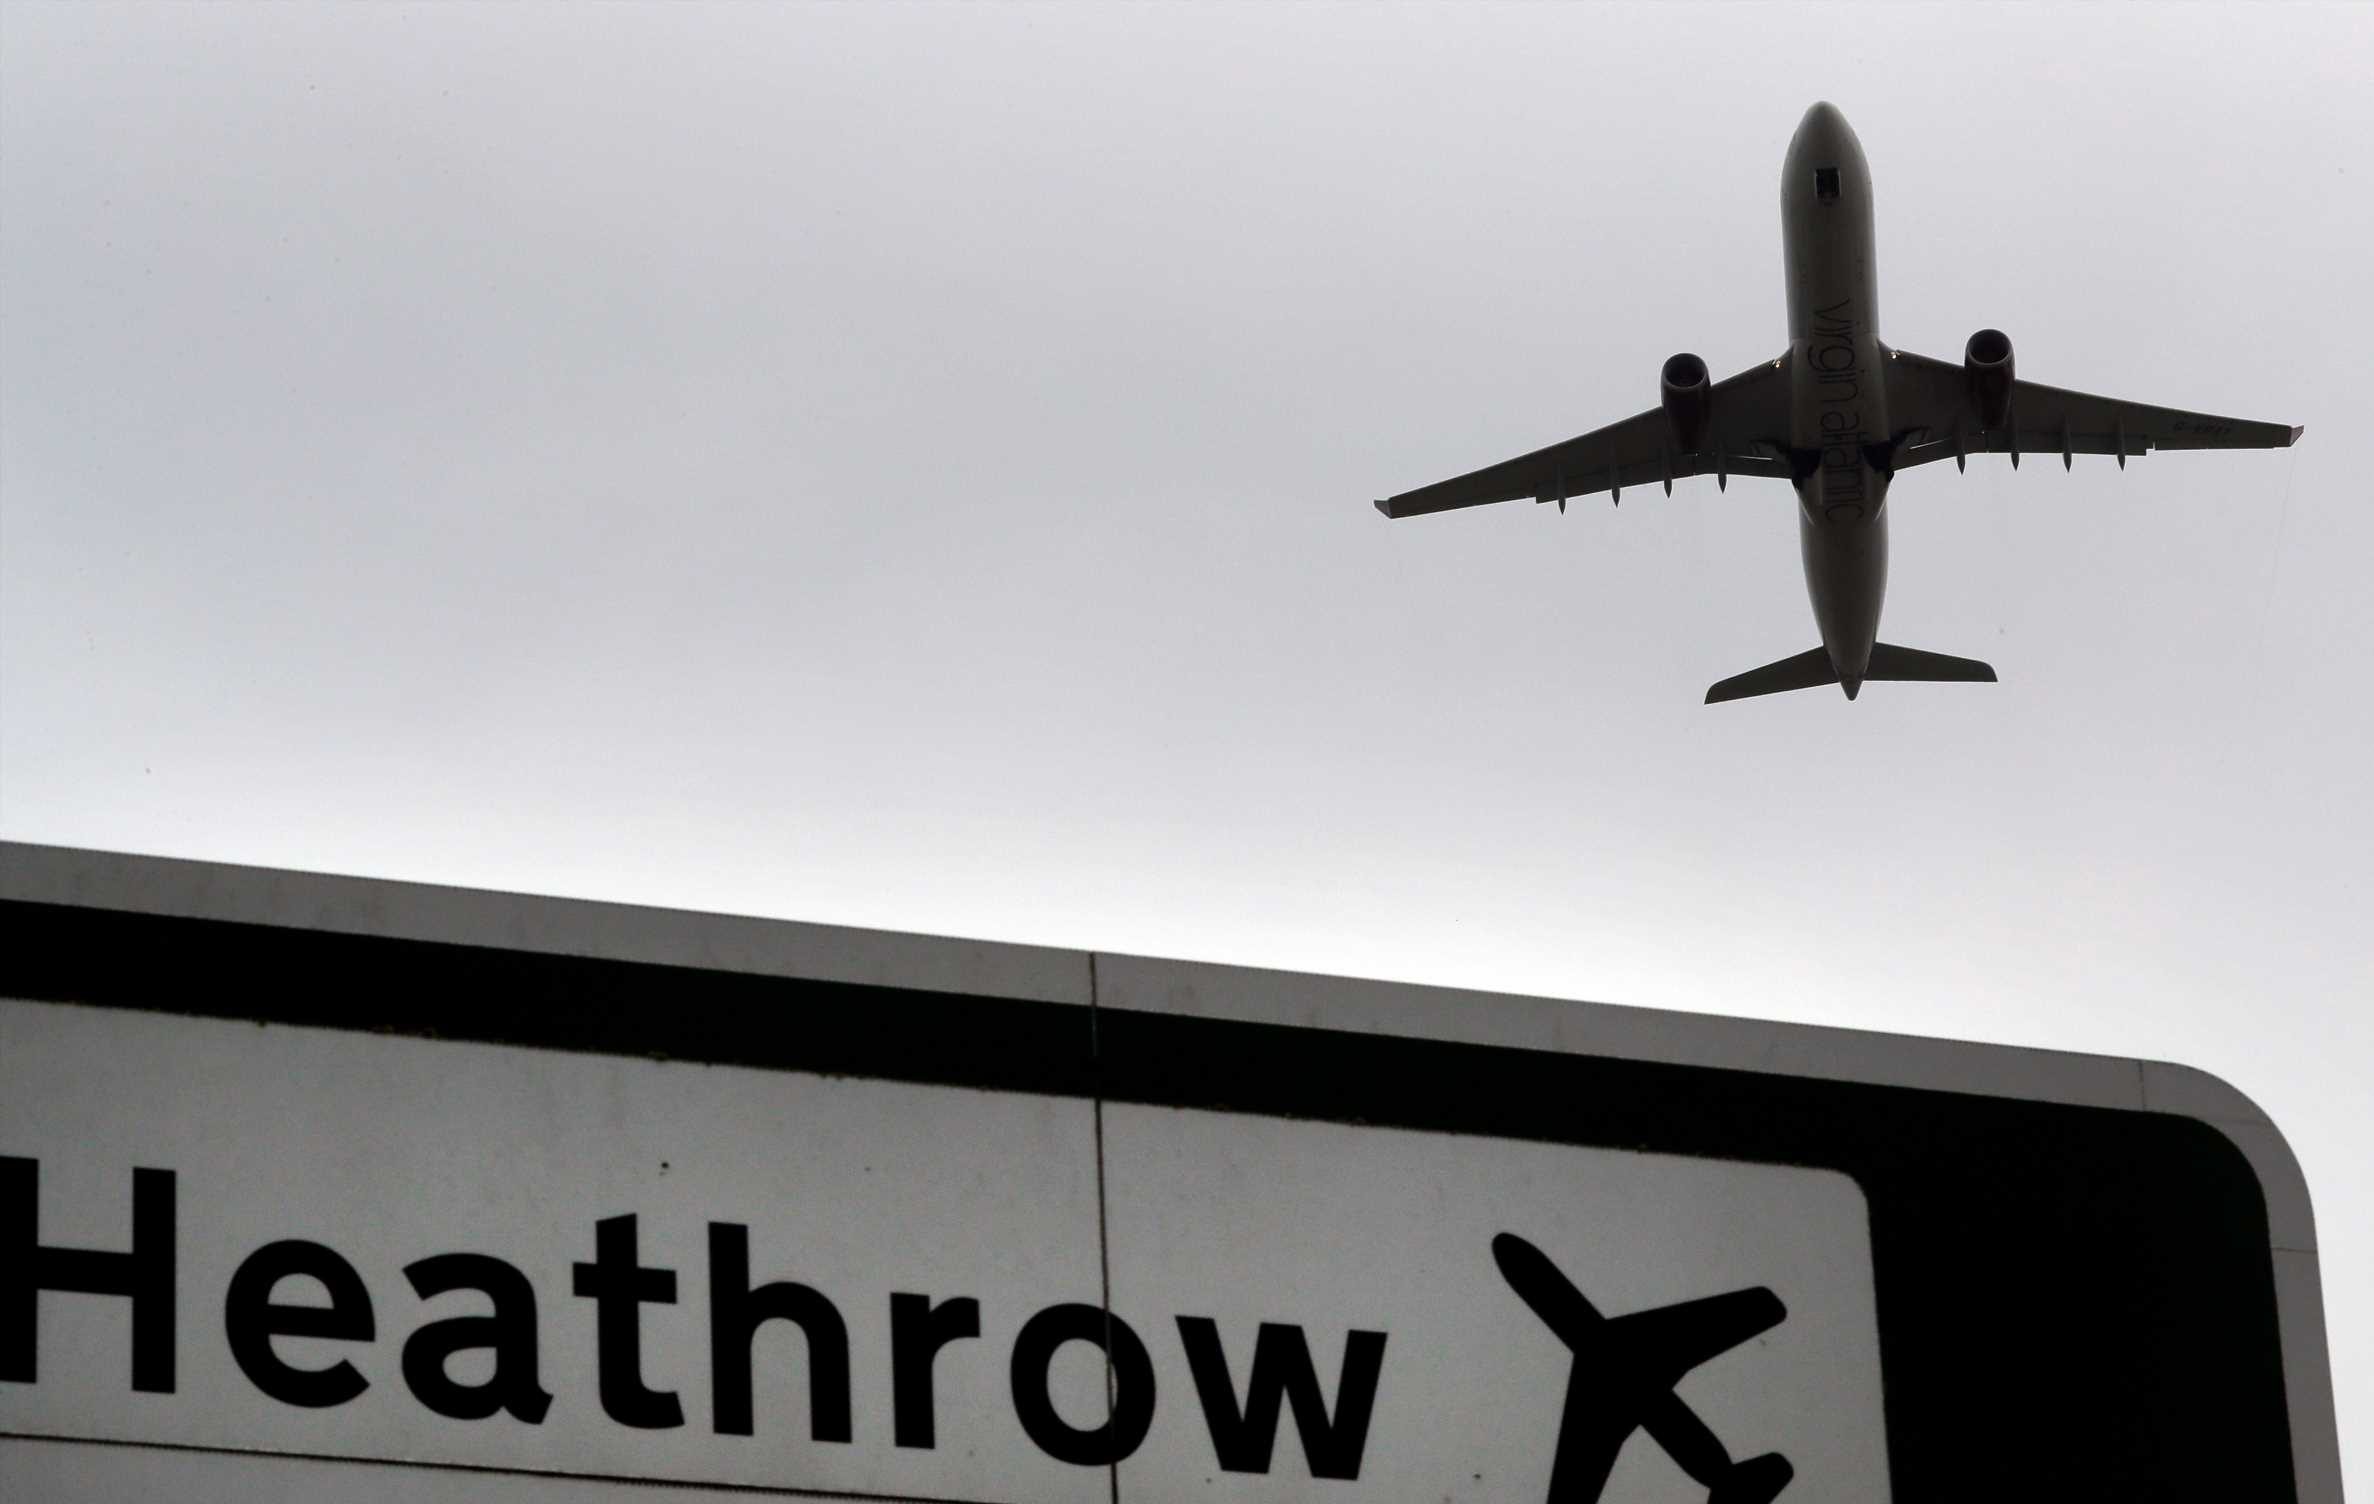 Heathrow Airport strikes latest – can you get a refund after disruption to Virgin Atlantic and British Airways flights